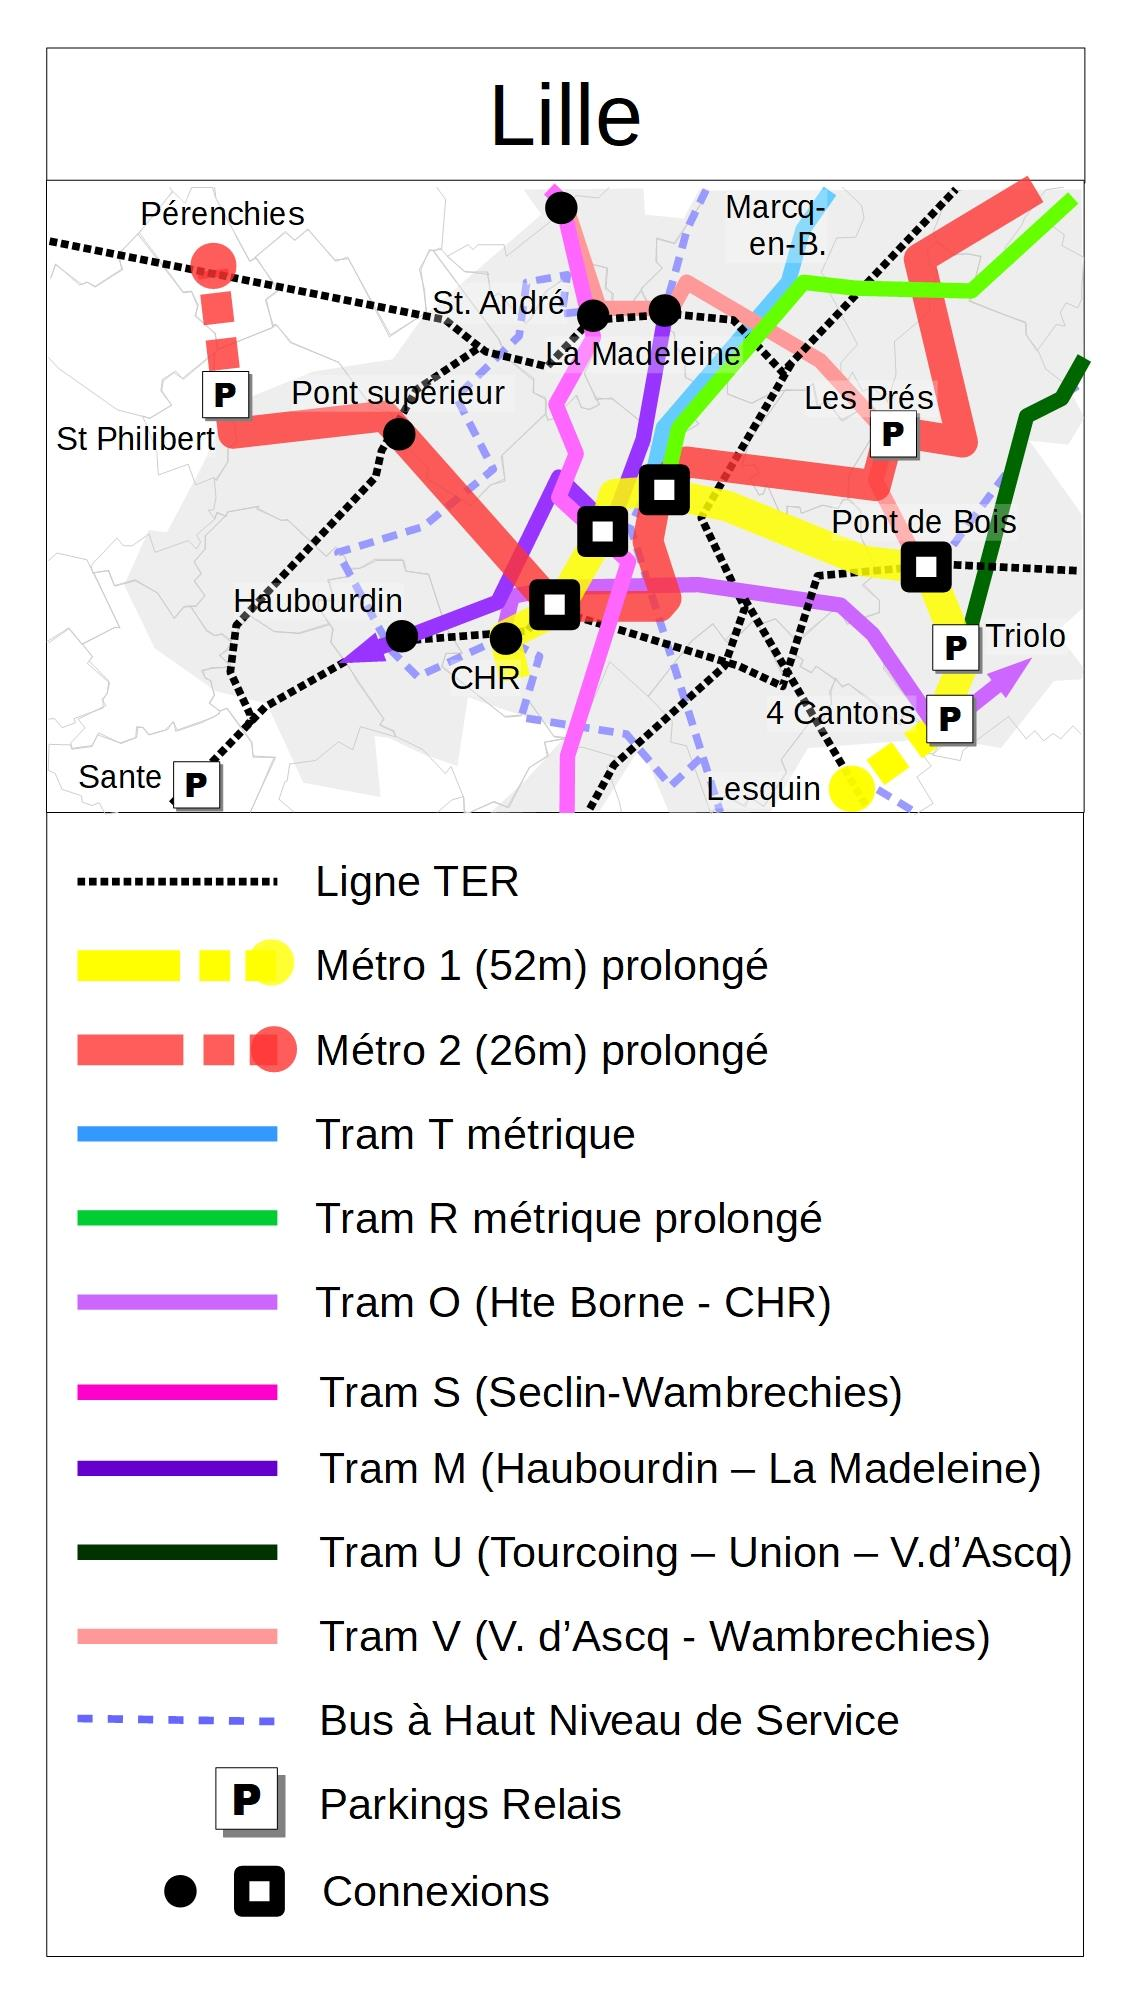 propositions_SDIT_EELV_Lille